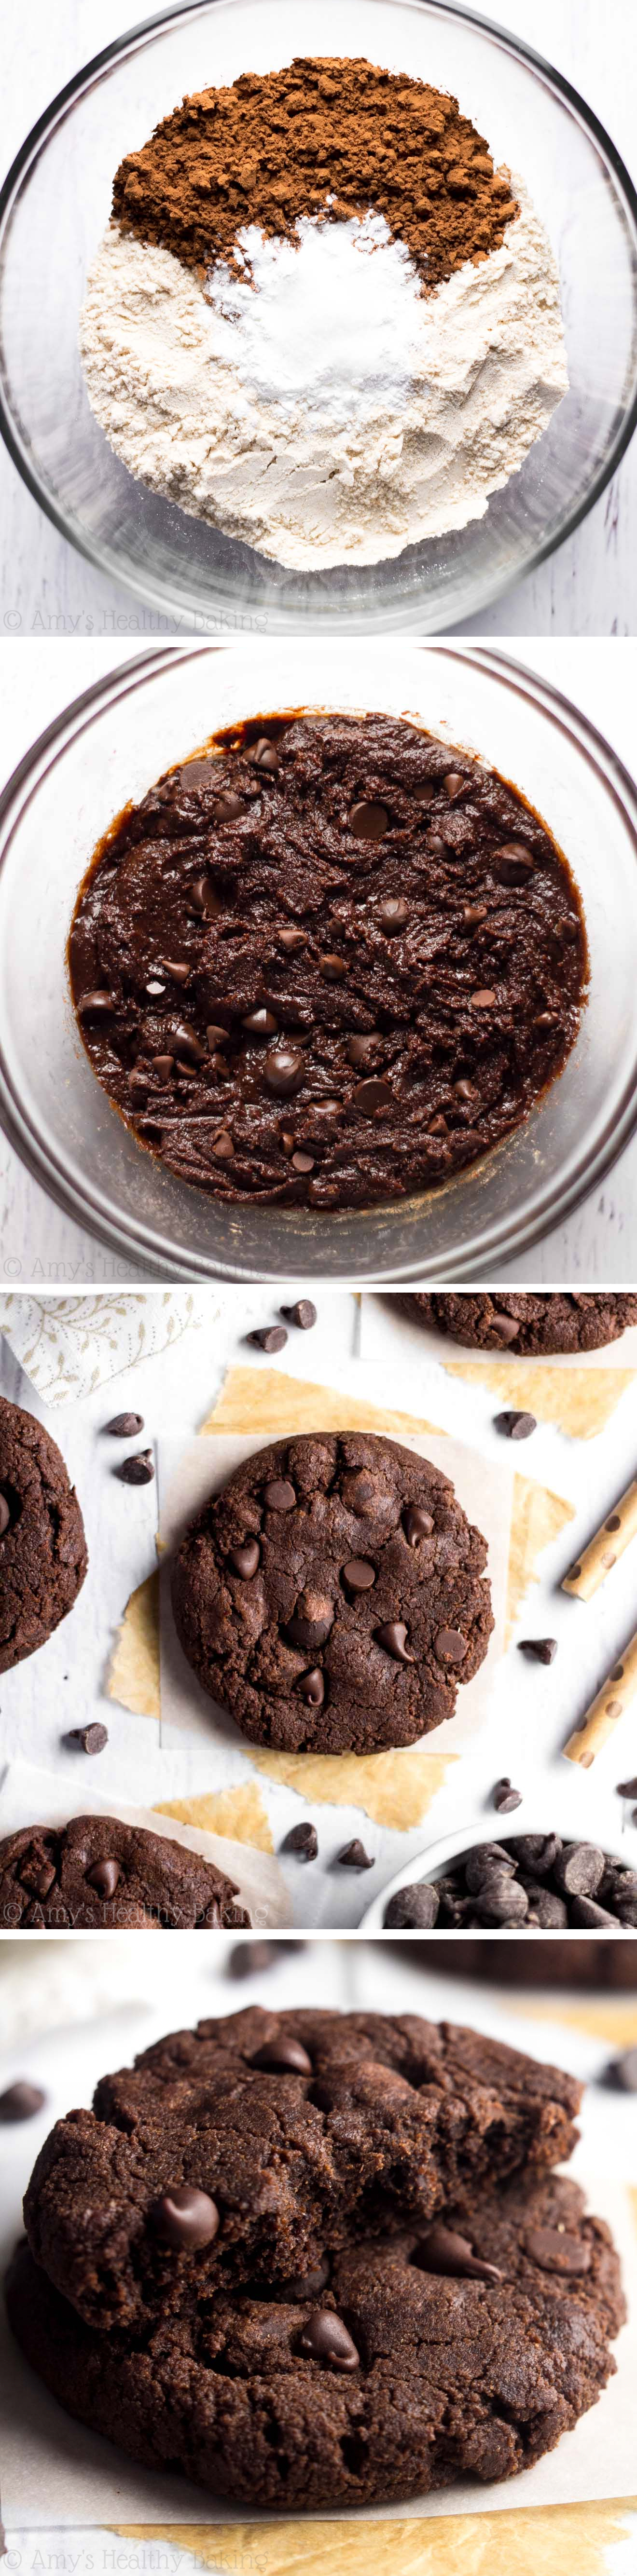 These decadent cookies are so easy to make & taste as fudgy as brownies! They're the BEST 100 calories I've ever eaten!